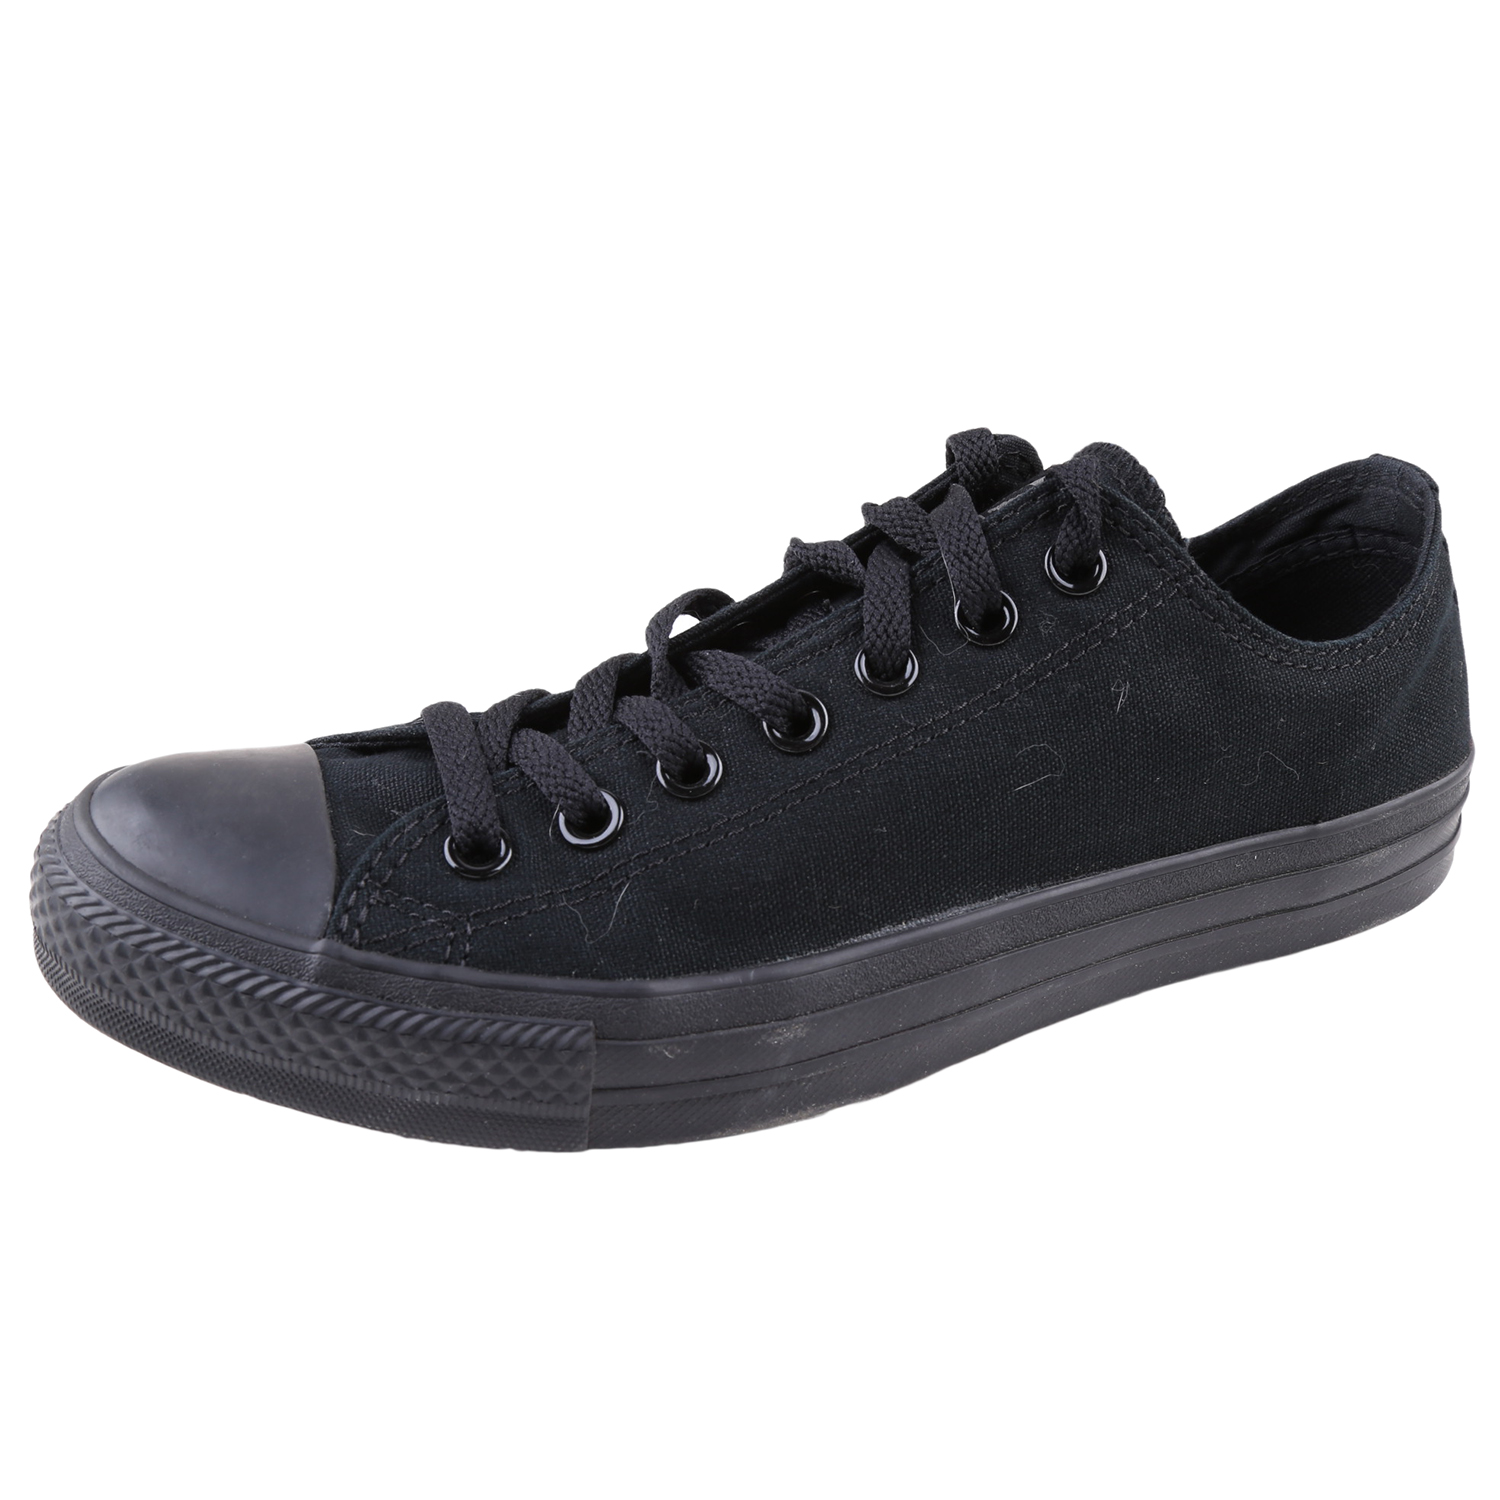 80c1308155a Details about Converse Mens Chuck Taylor All Star OX Shoes M5039 Black  8.5M 10.5W